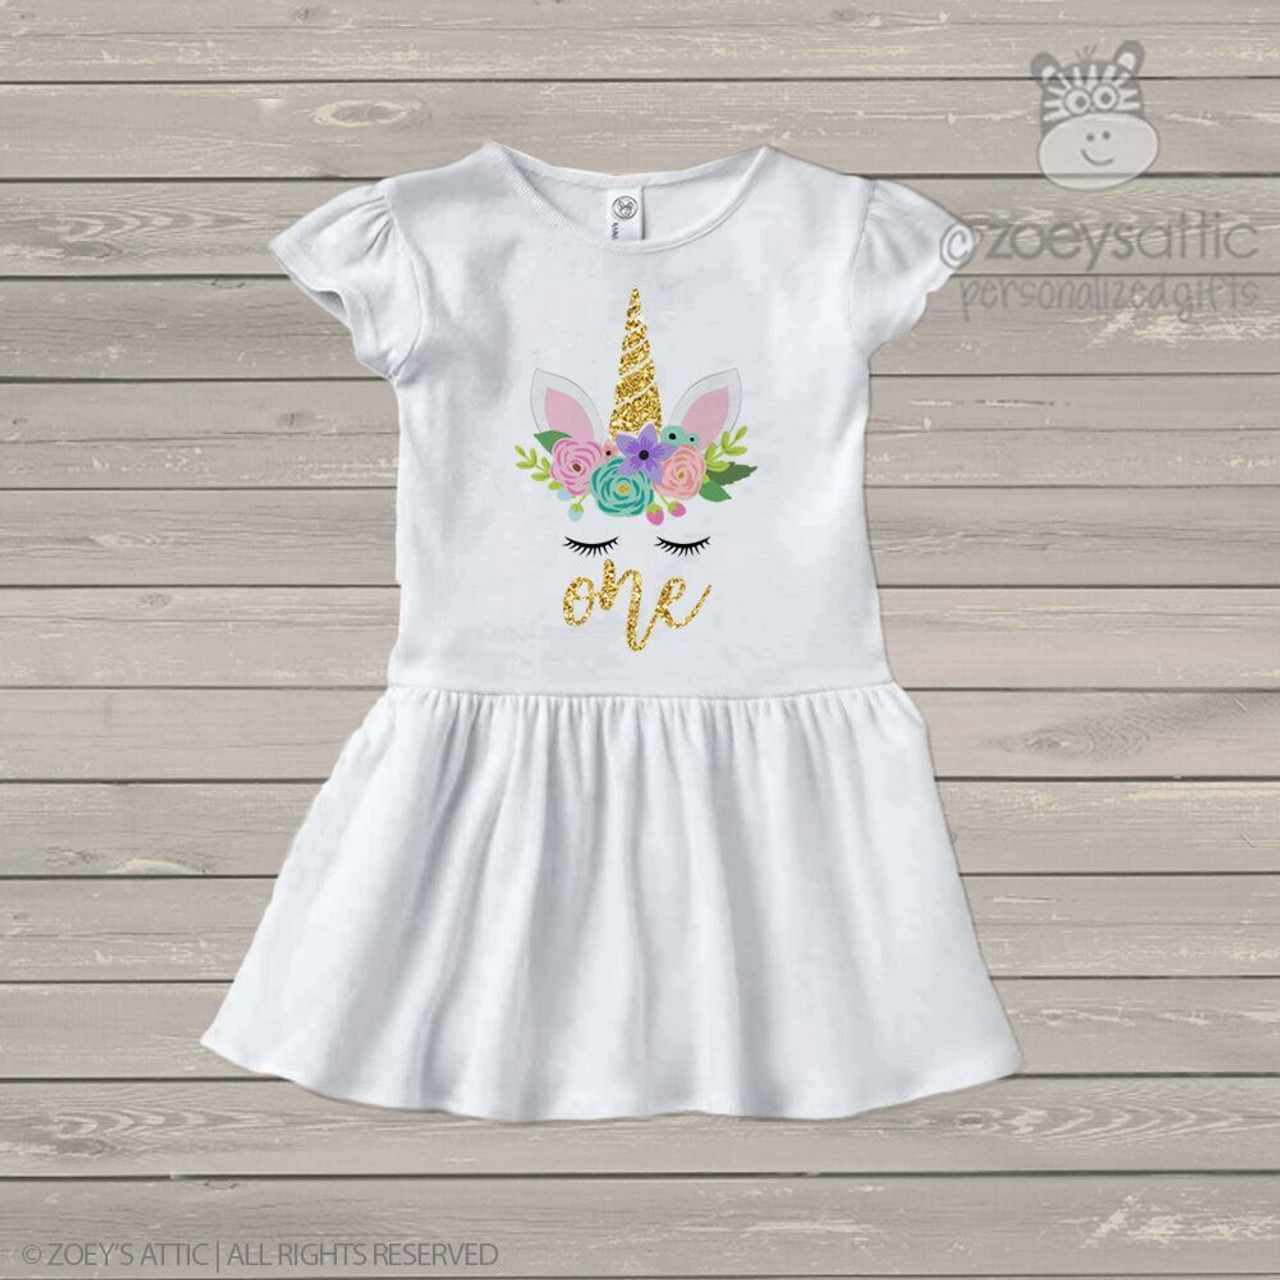 2a29eaa16af46 Personalized Birthday Dress For Toddler | Lixnet AG